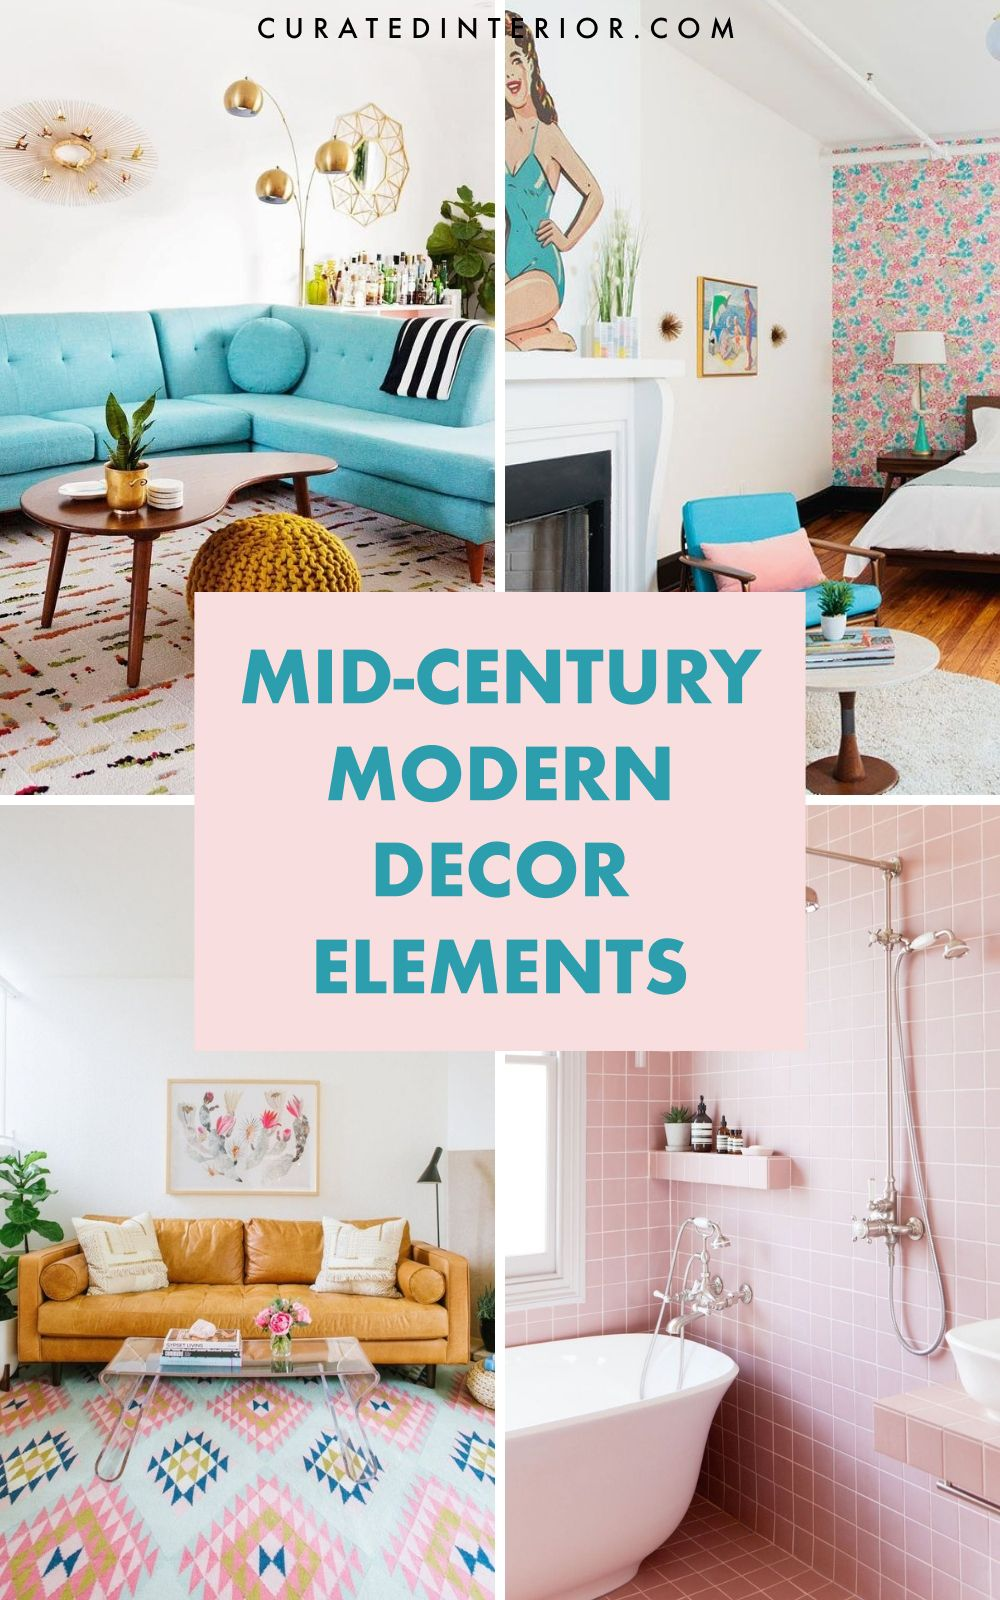 Mid-century modern decor elements